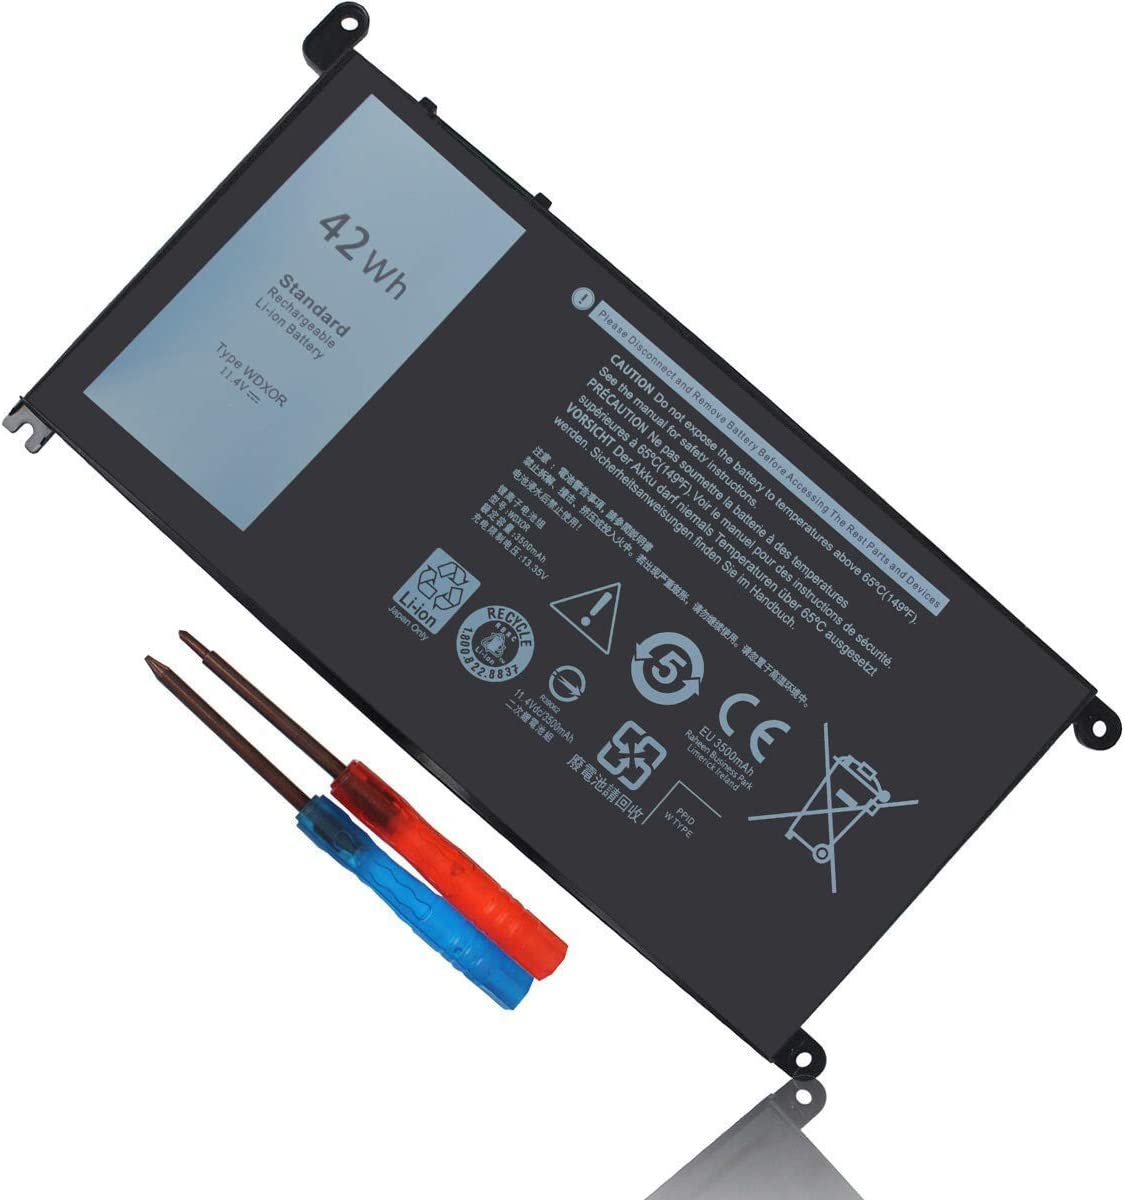 WDX0R WDXOR Battery Compatible with Dell Inspiron 15 5565 5567 5568 5570 5578 7560 7570 7569 7579 Inspiron 13 7368 7378 5368 5378 5379 17 5765 5767 5770 3CRH3 T2JX4 FC92N CYMGM P69G P58F Battery 42Wh